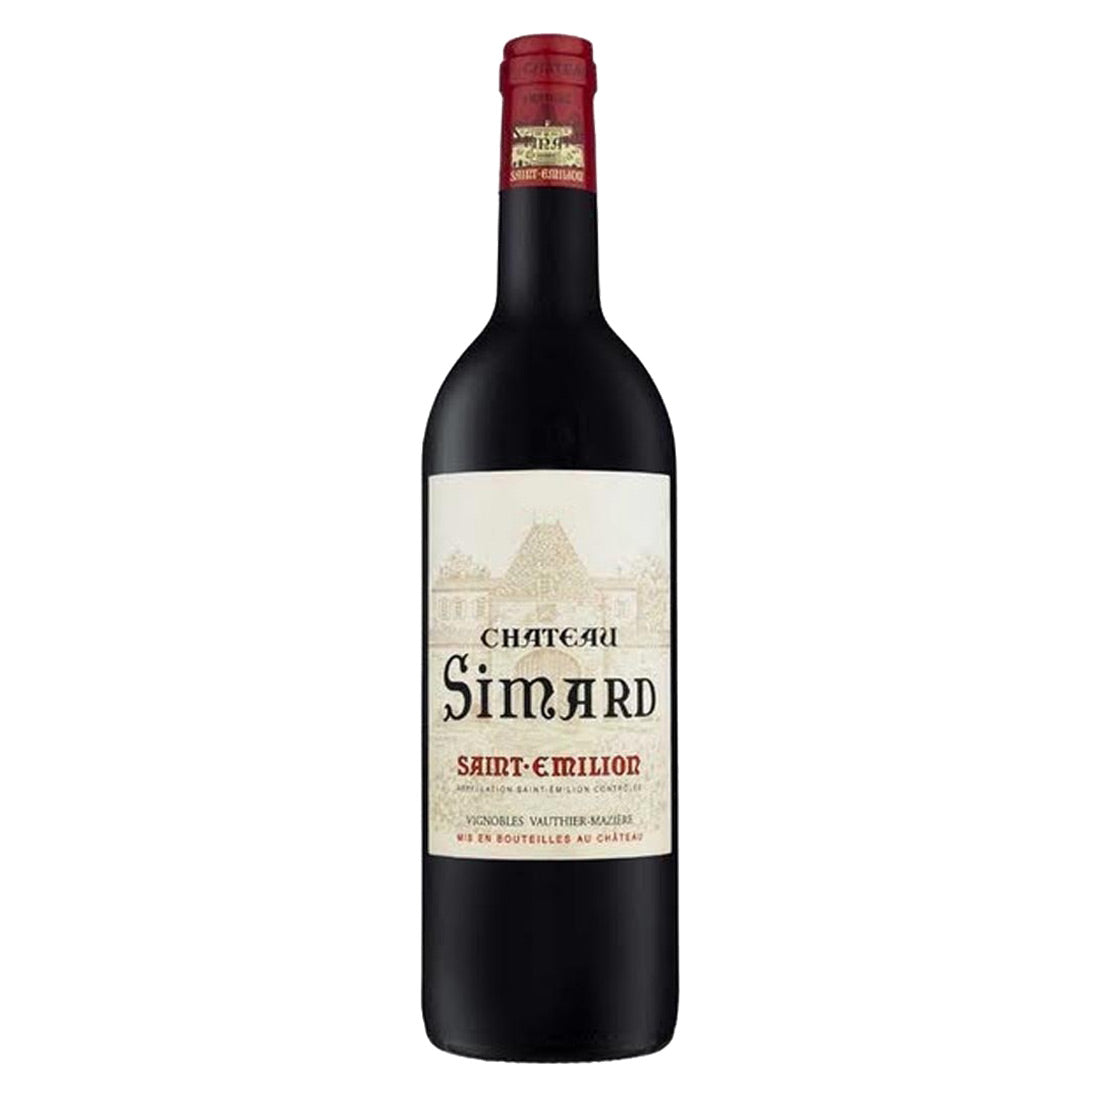 Chateau Simard Saint Emilion Grand Cru 2011 - 750ml Red Wine - Drinkka Alcohol Delivery Best Whiskey Wine Gin Beer Vodkas and more for Parties in Makati BGC Fort and Manila | Bevtools Bar and Beverage Tools